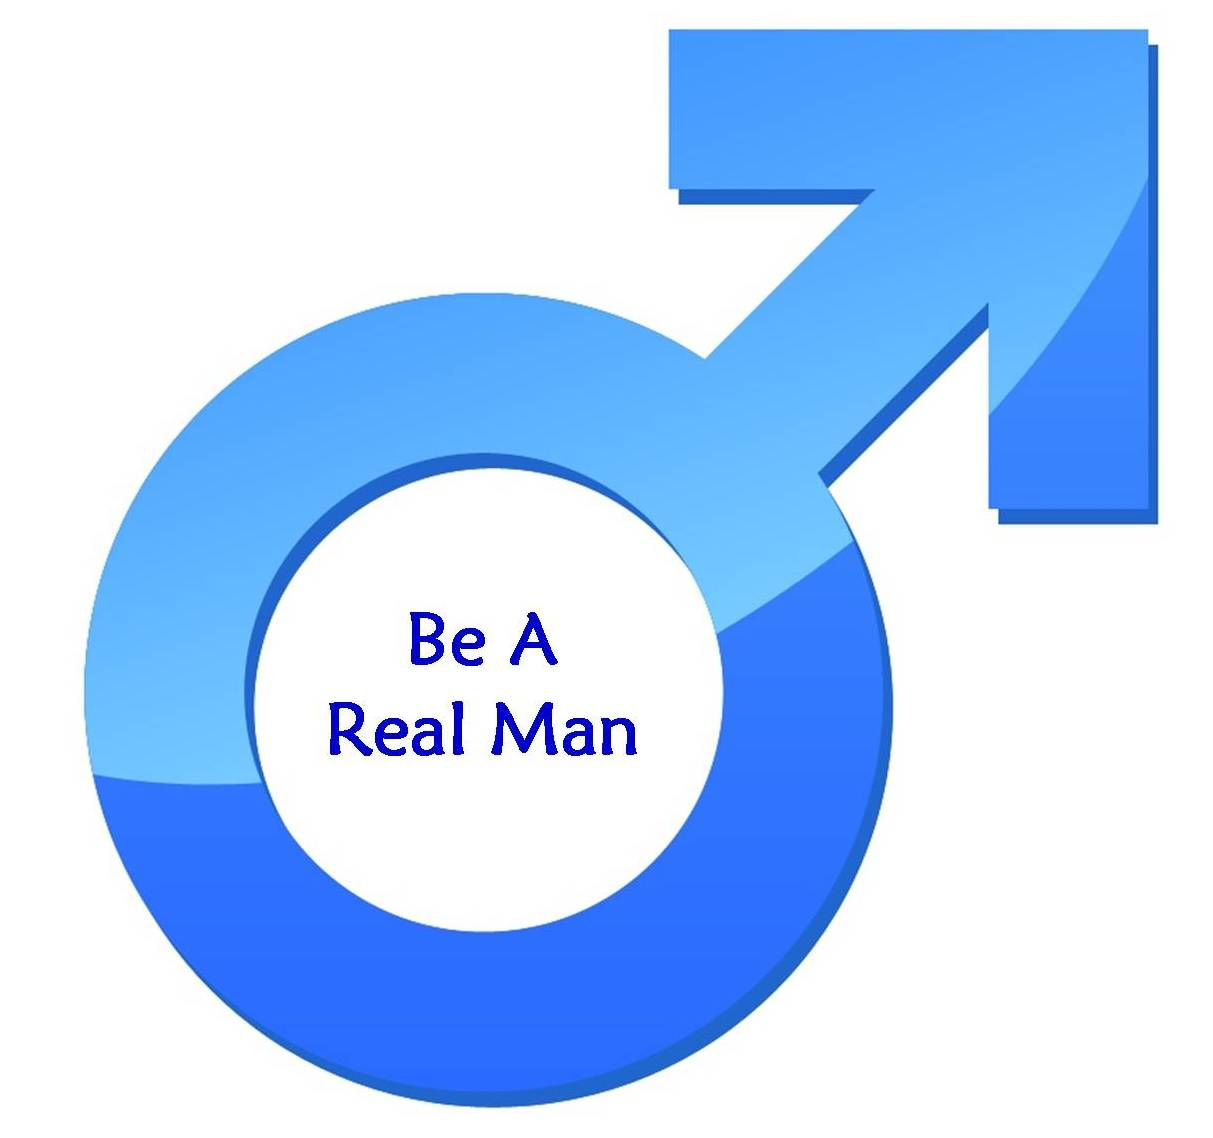 What qualities should a real man have? 73